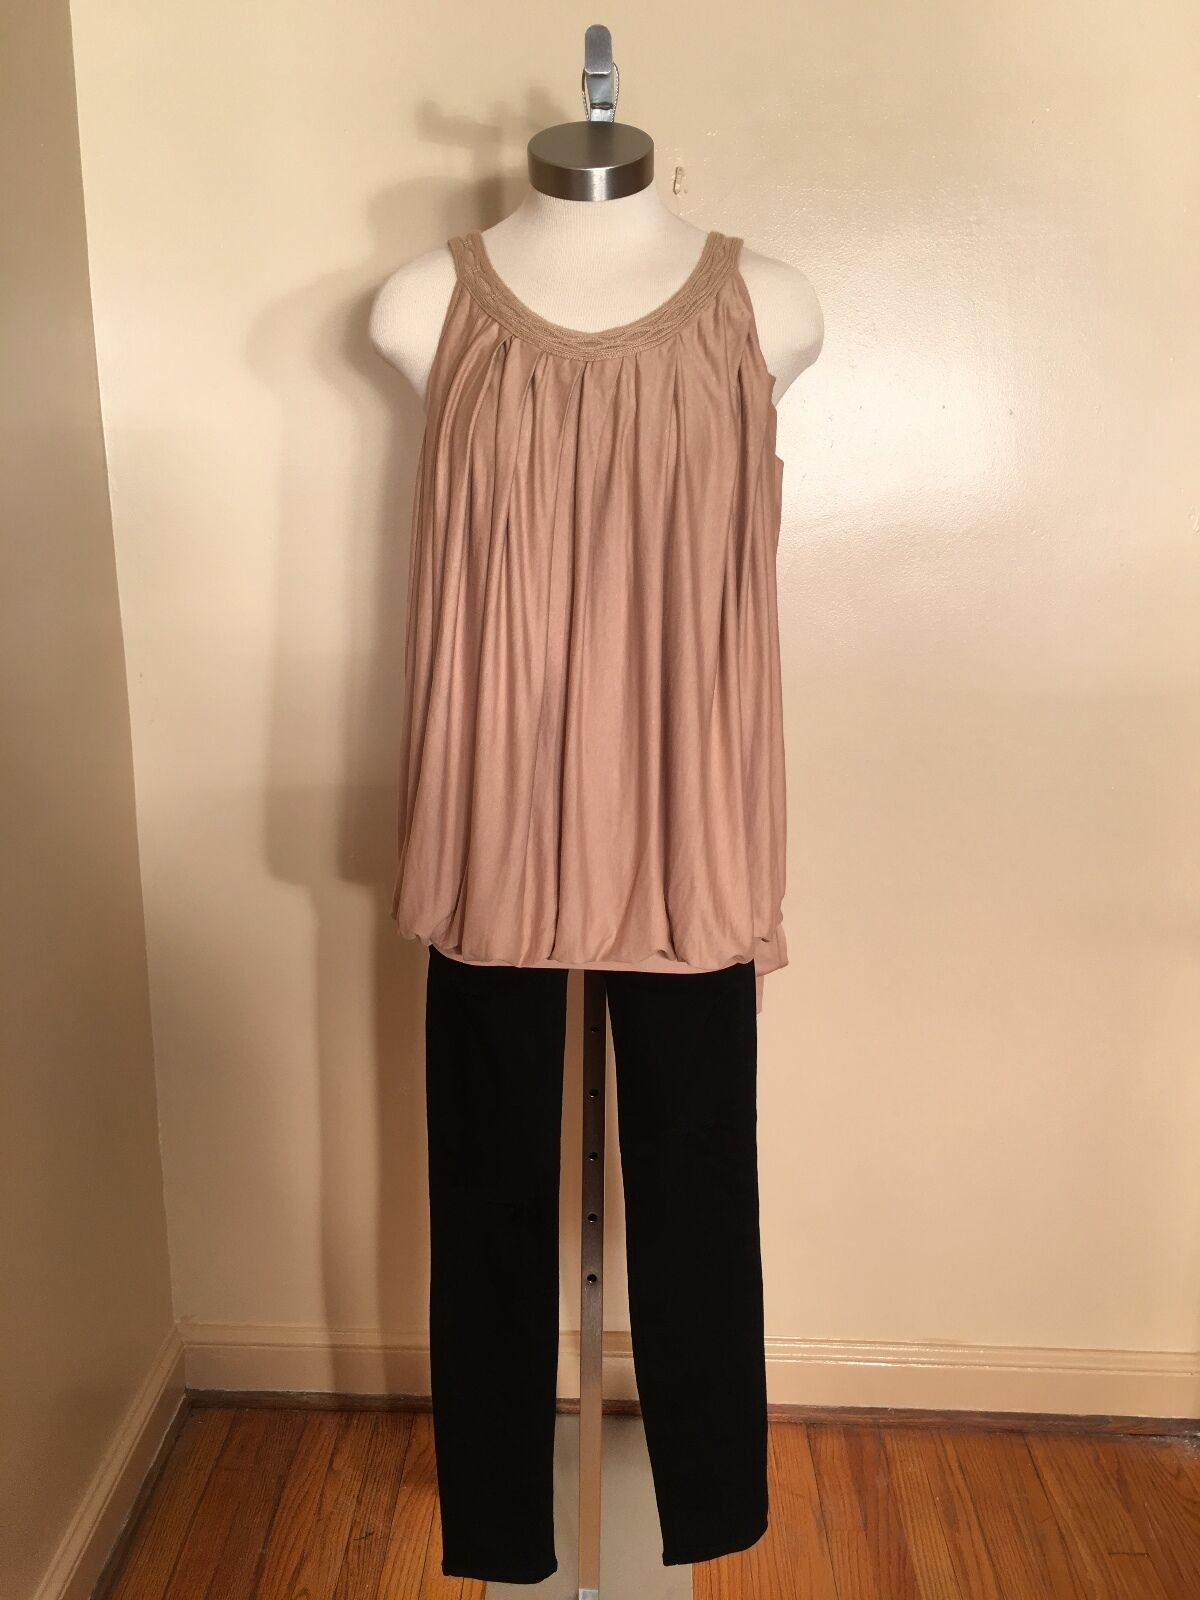 Women's Paige Ruched Nude color Retro Top Size XSmall